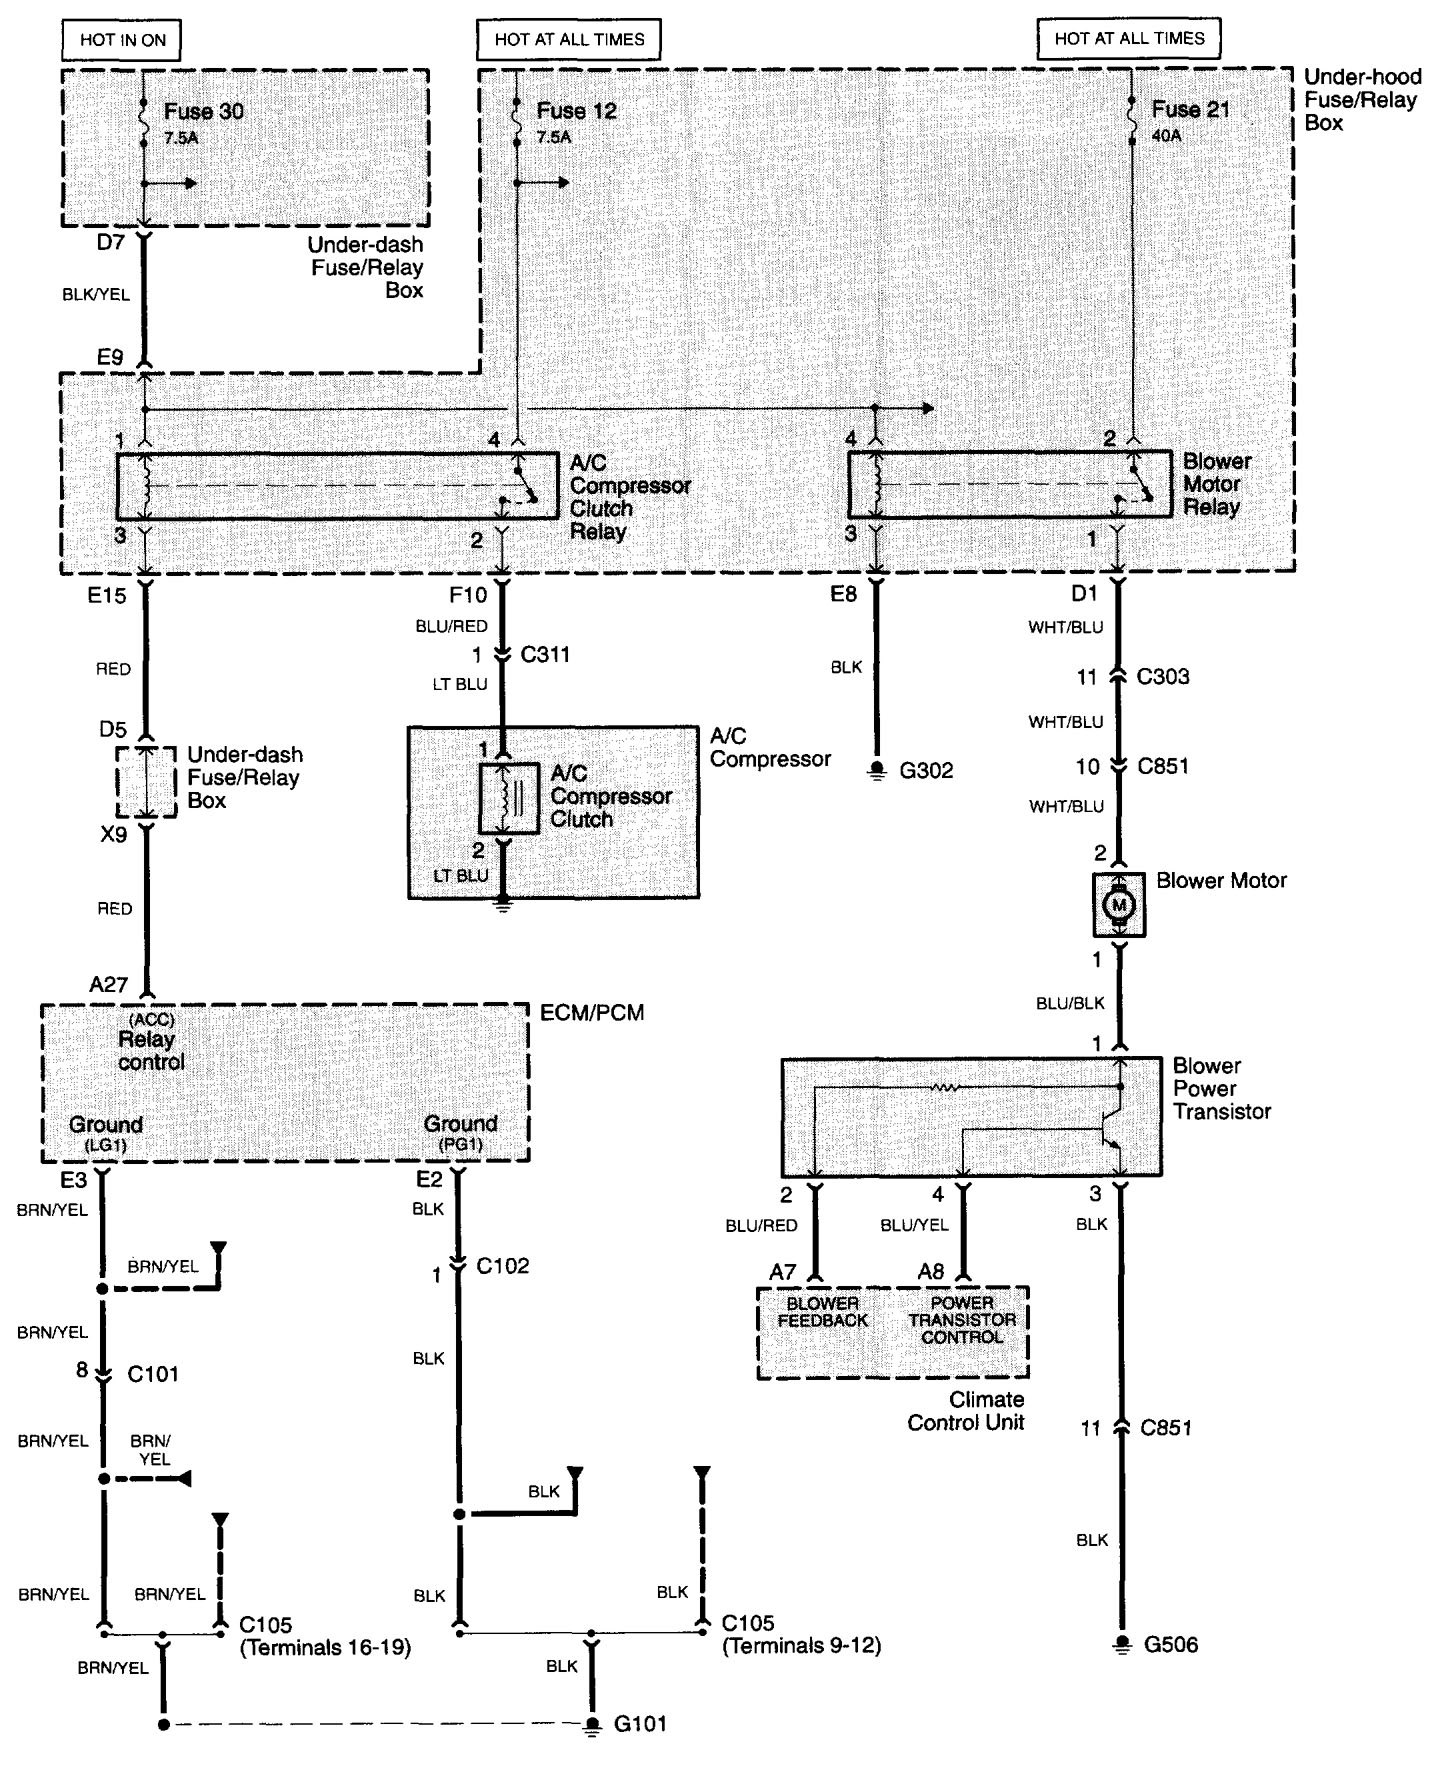 Acura Wiring Schematics Diagrams Hvac Drawing Images Free Download Tl 2003 2005 Controls Simple Schematic Symbols